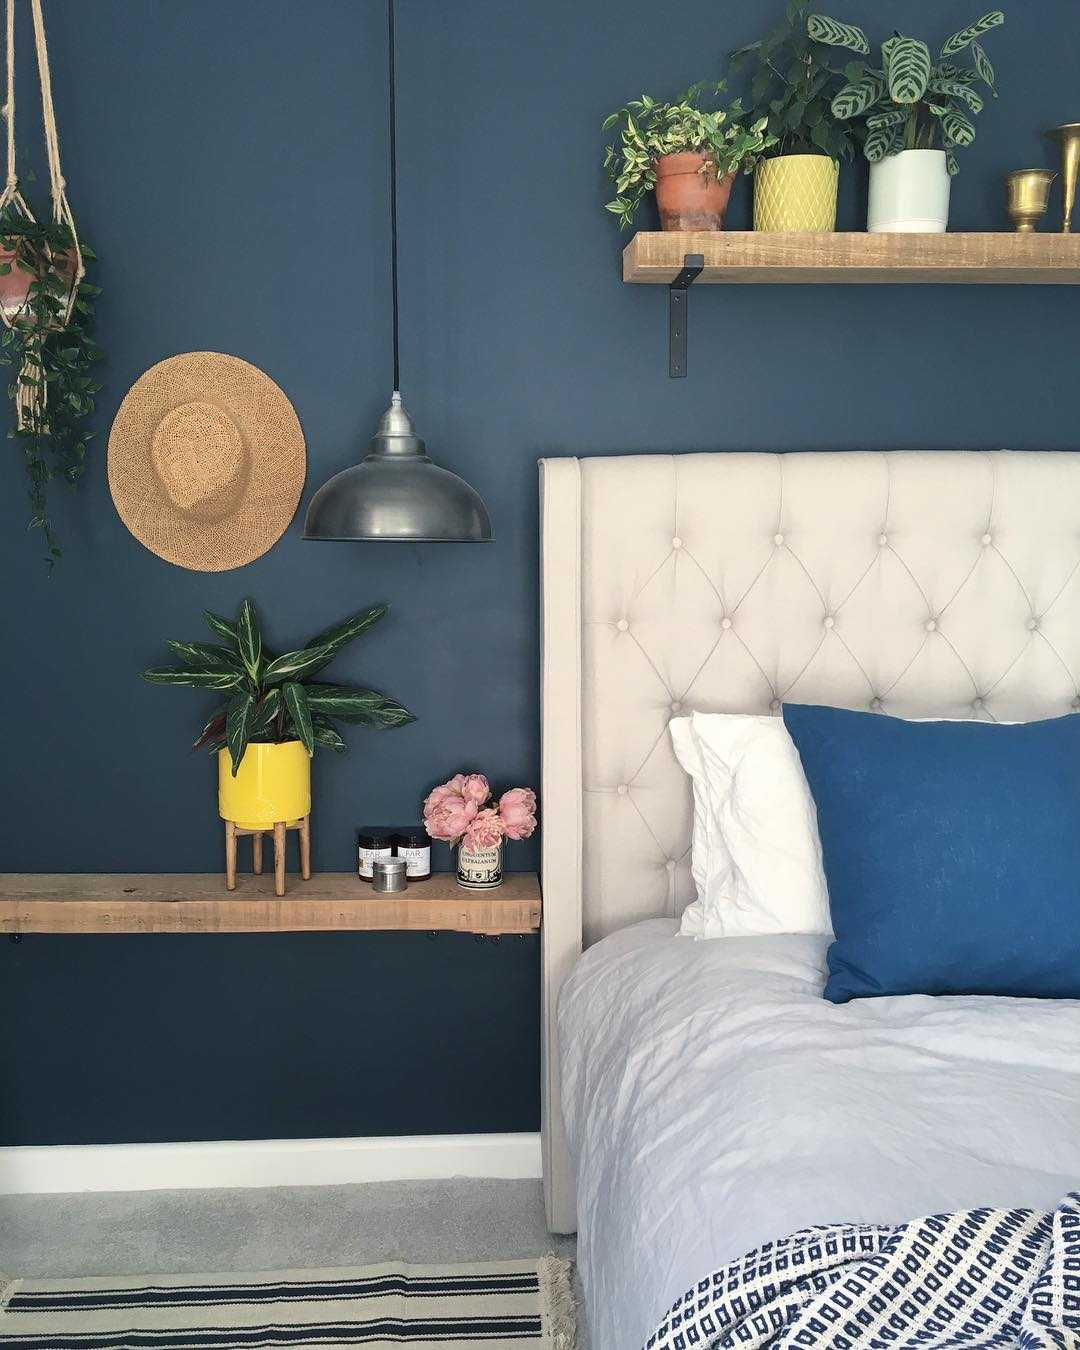 Blue bedroom interior with pewter lights